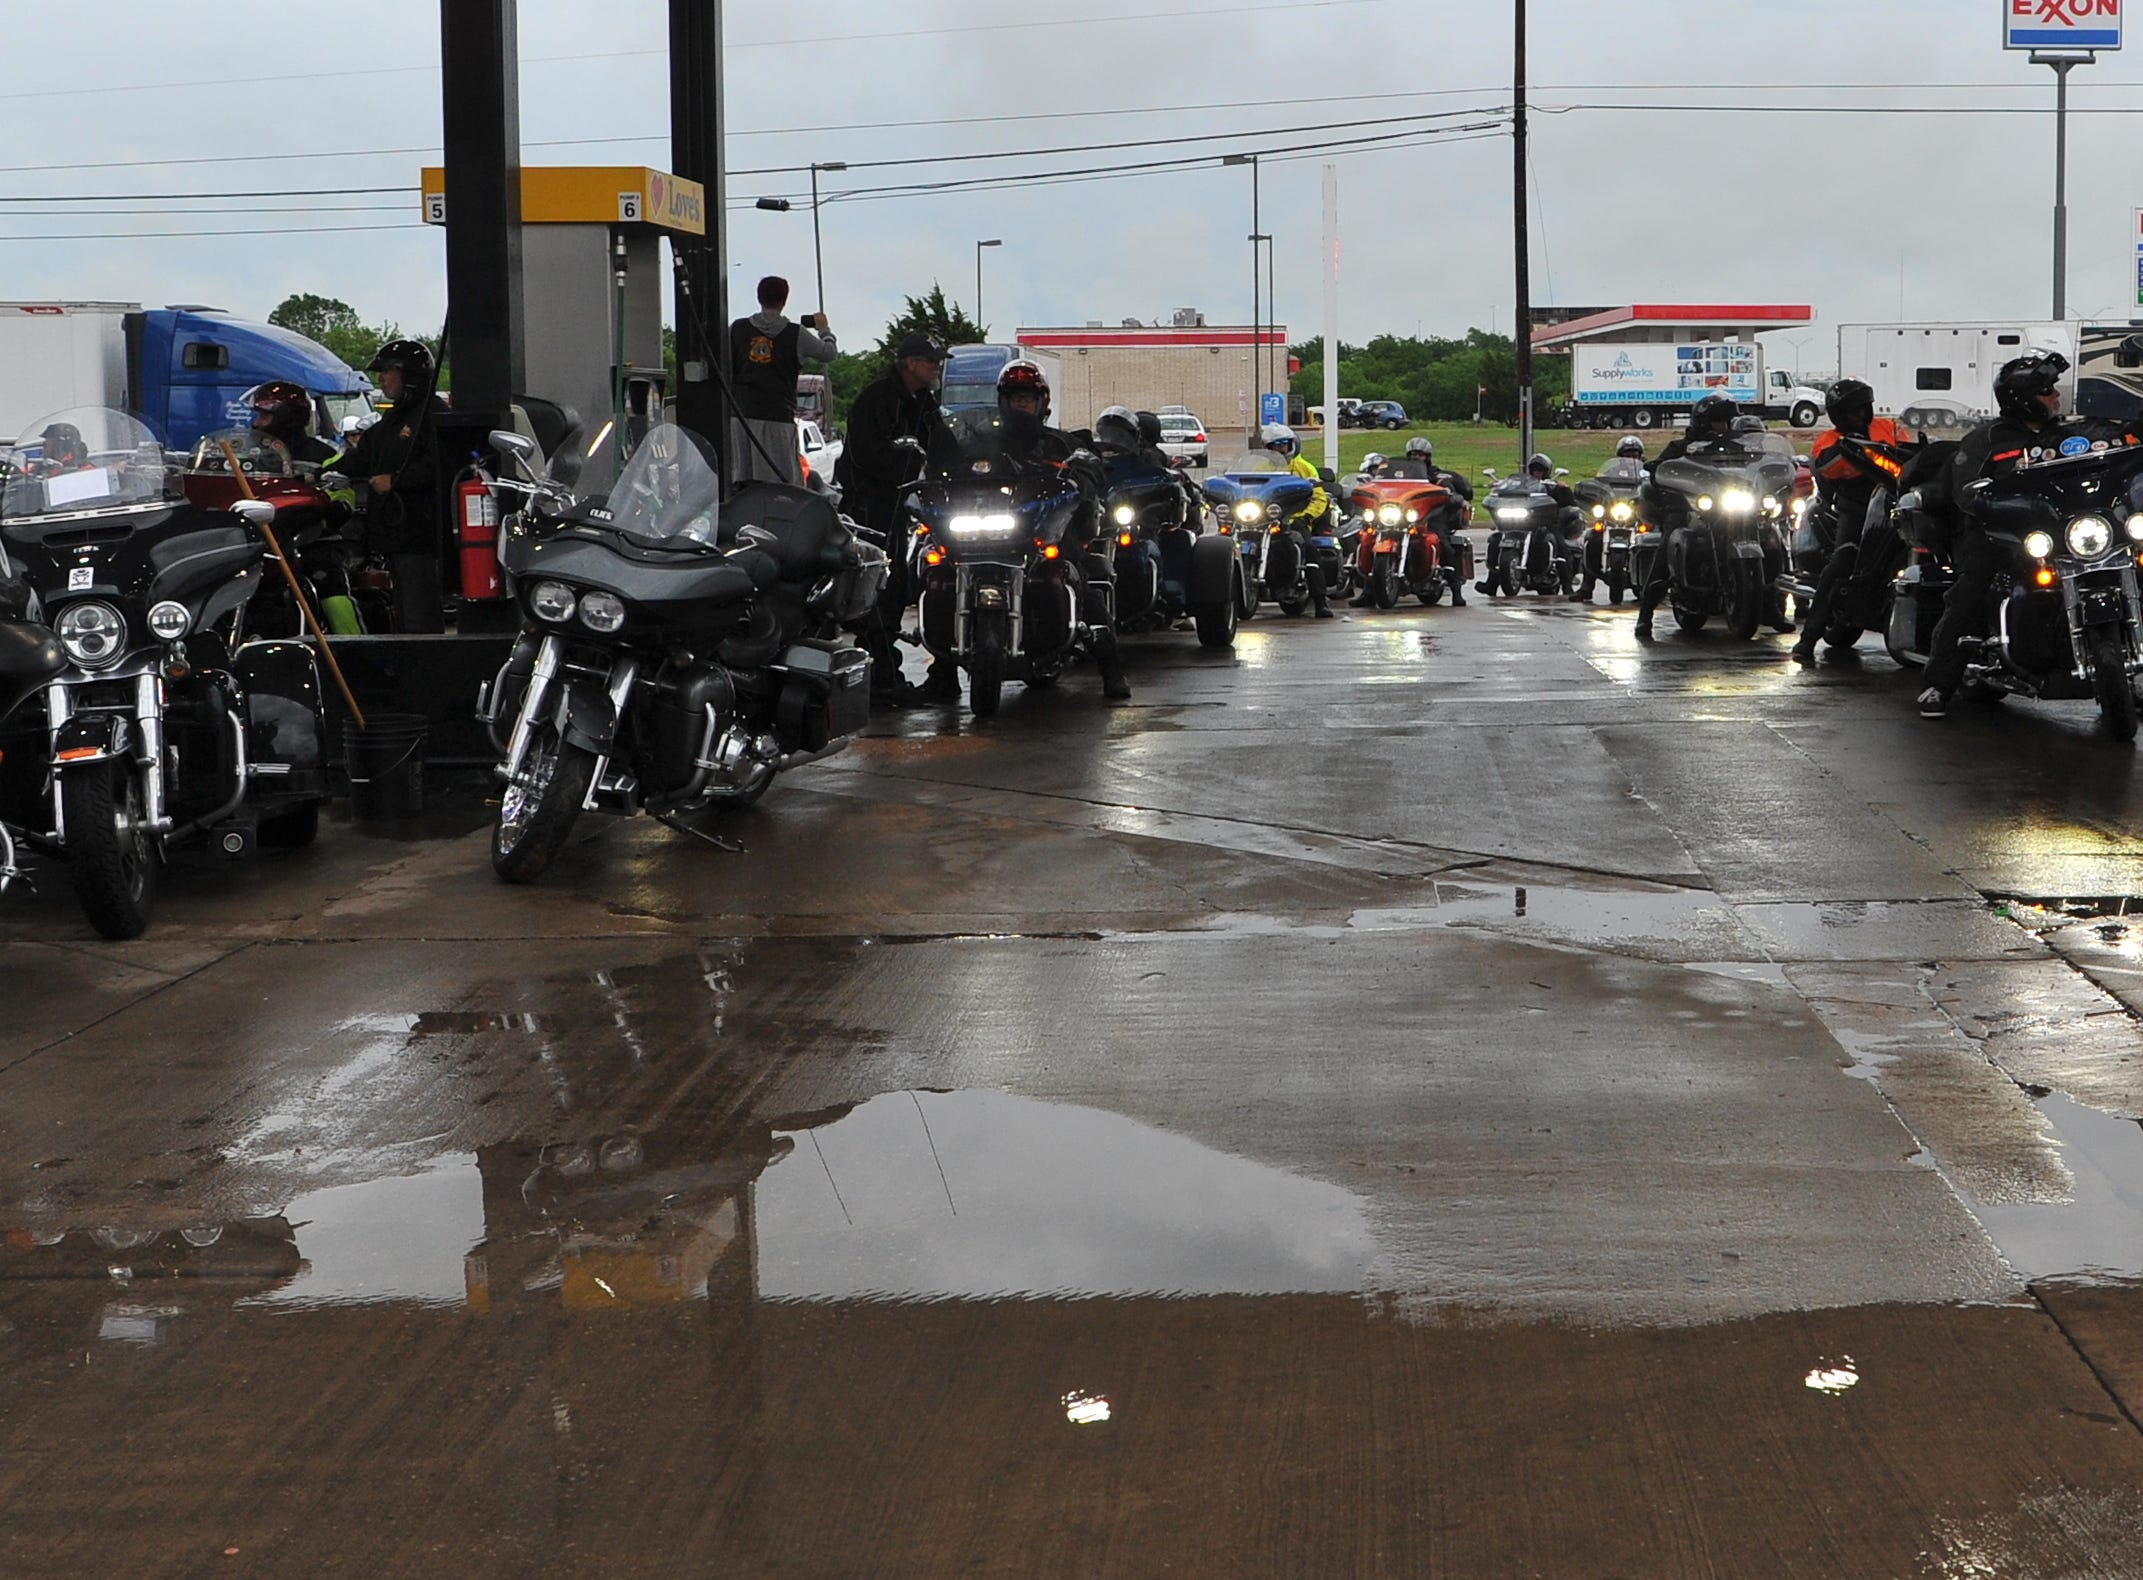 Kyle Petty and his Charity Ride made a Wichita Falls pitstop, Wednesday morning to refuel and meet fans. Petty began his charity ride 25-years-ago by combining his love for helping others with motorcycles, according to a release.